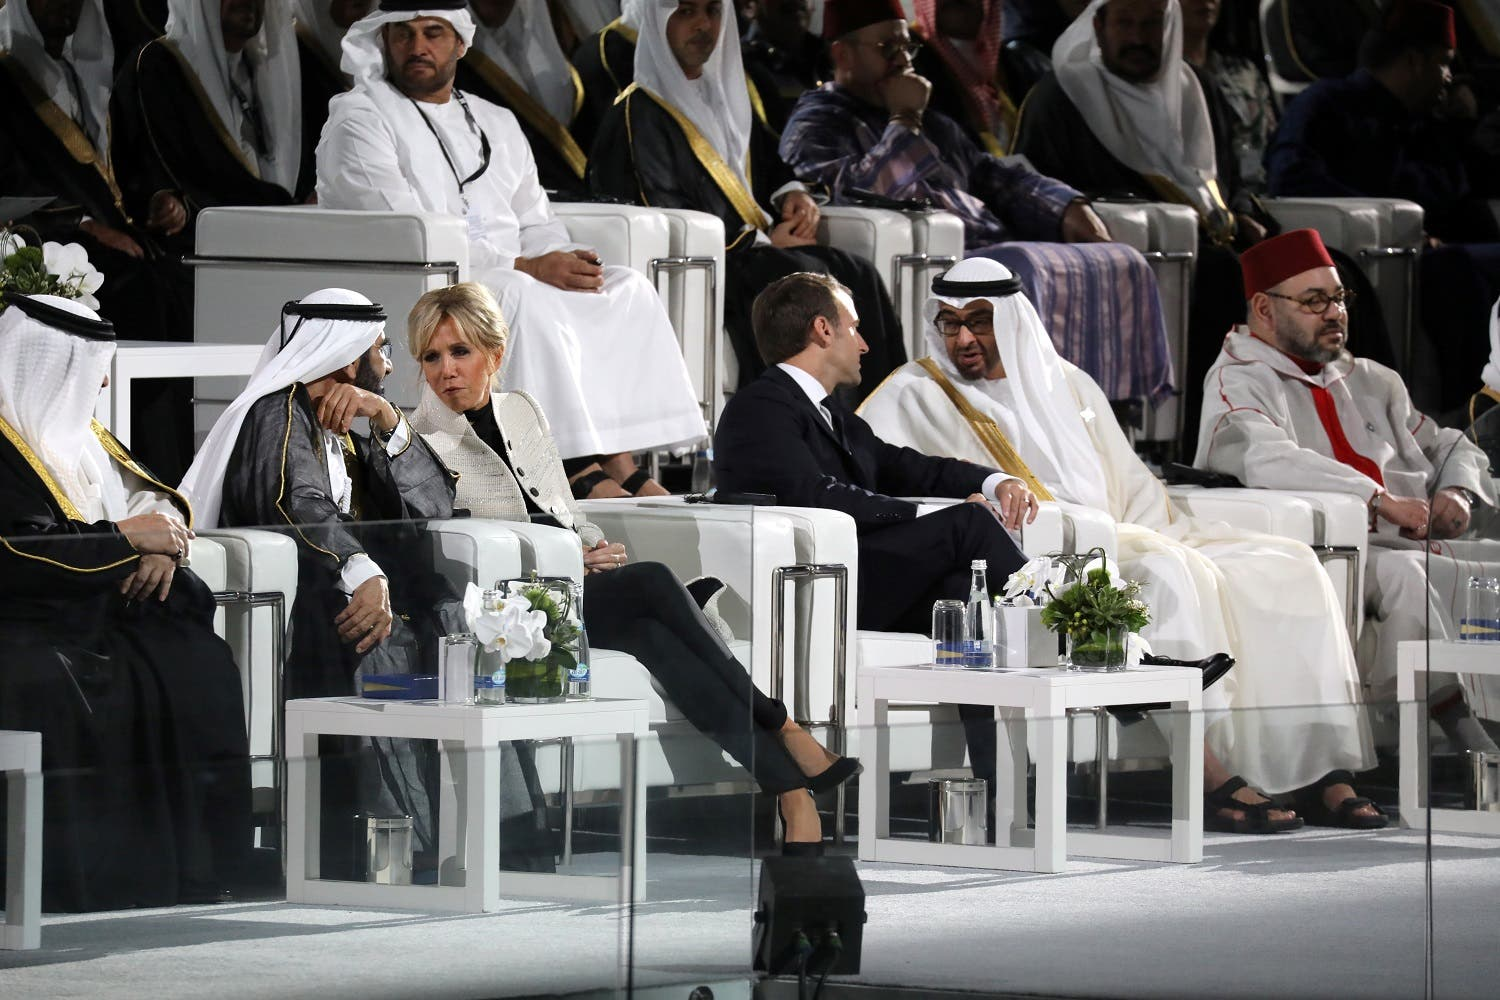 President Macron (C-R) and his wife Brigitte Macron (C-L) chat with Abu Dhabi Crown Prince Mohammed bin Zayed Al-Nahyan (R) and Ruler of Dubai Sheikh Mohammed bin Rashid al-Maktoum during the inauguration of the Louvre Abu Dhabi Museum on November 8, 2017 on Saadiyat island in the Emirati capital. (AFP)